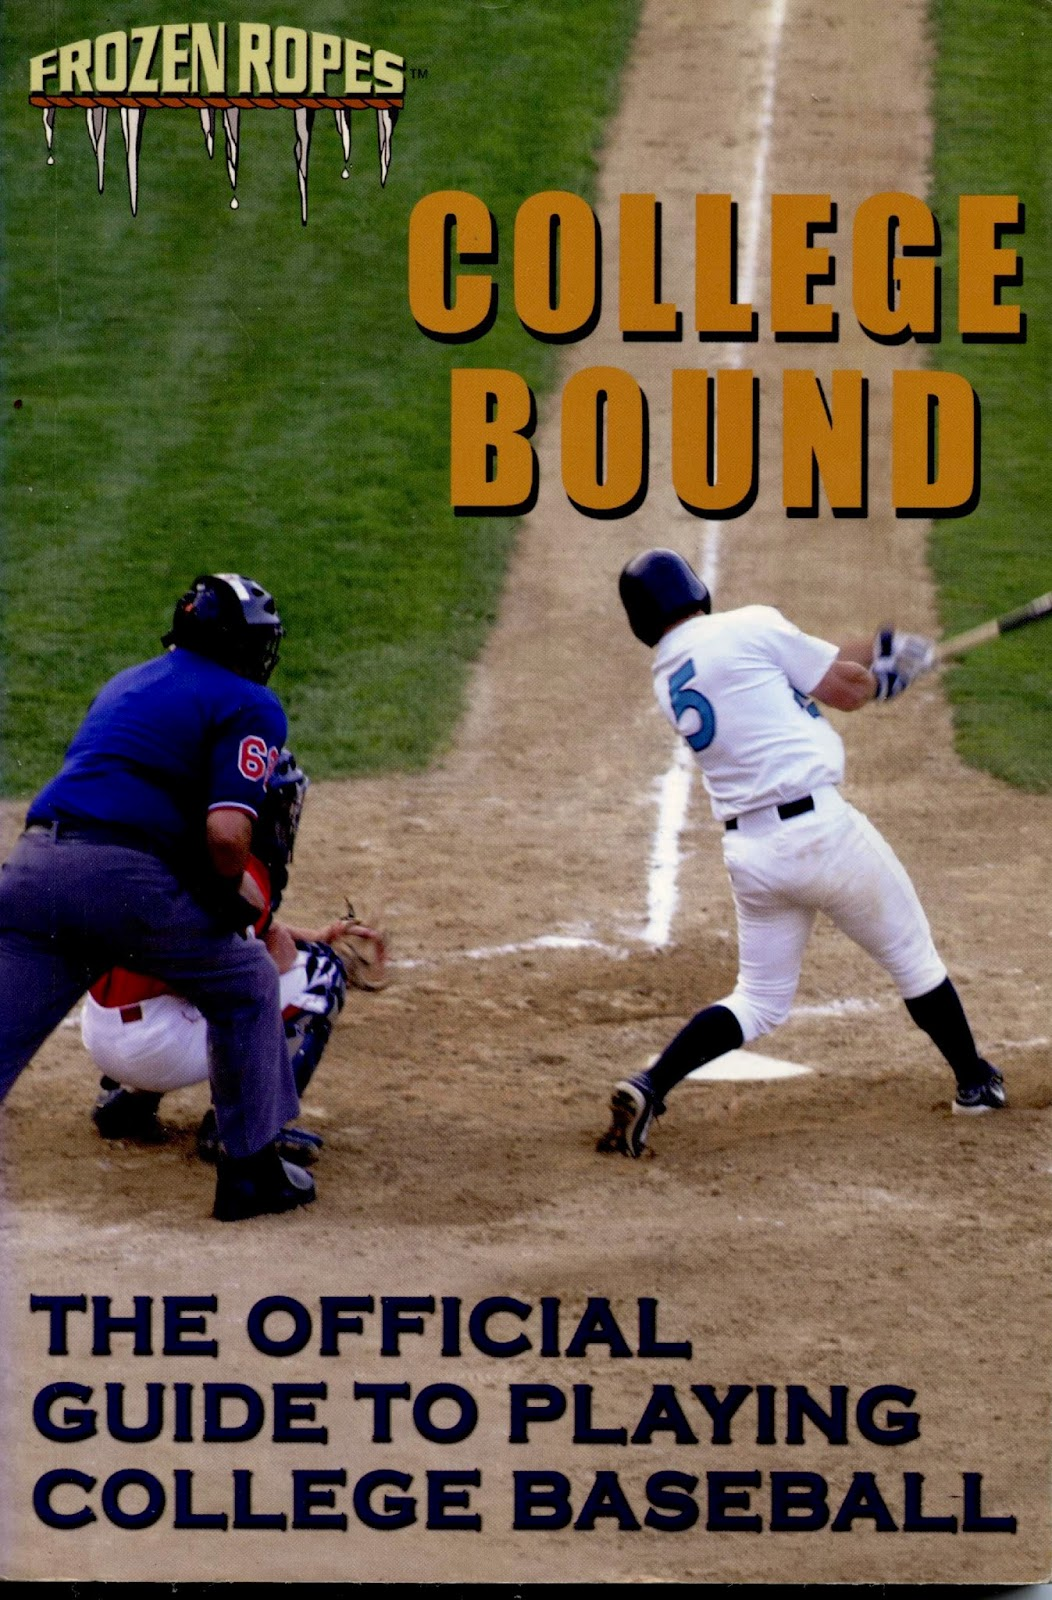 College Bound Book For Baseball Players Front Cover 2005 edition